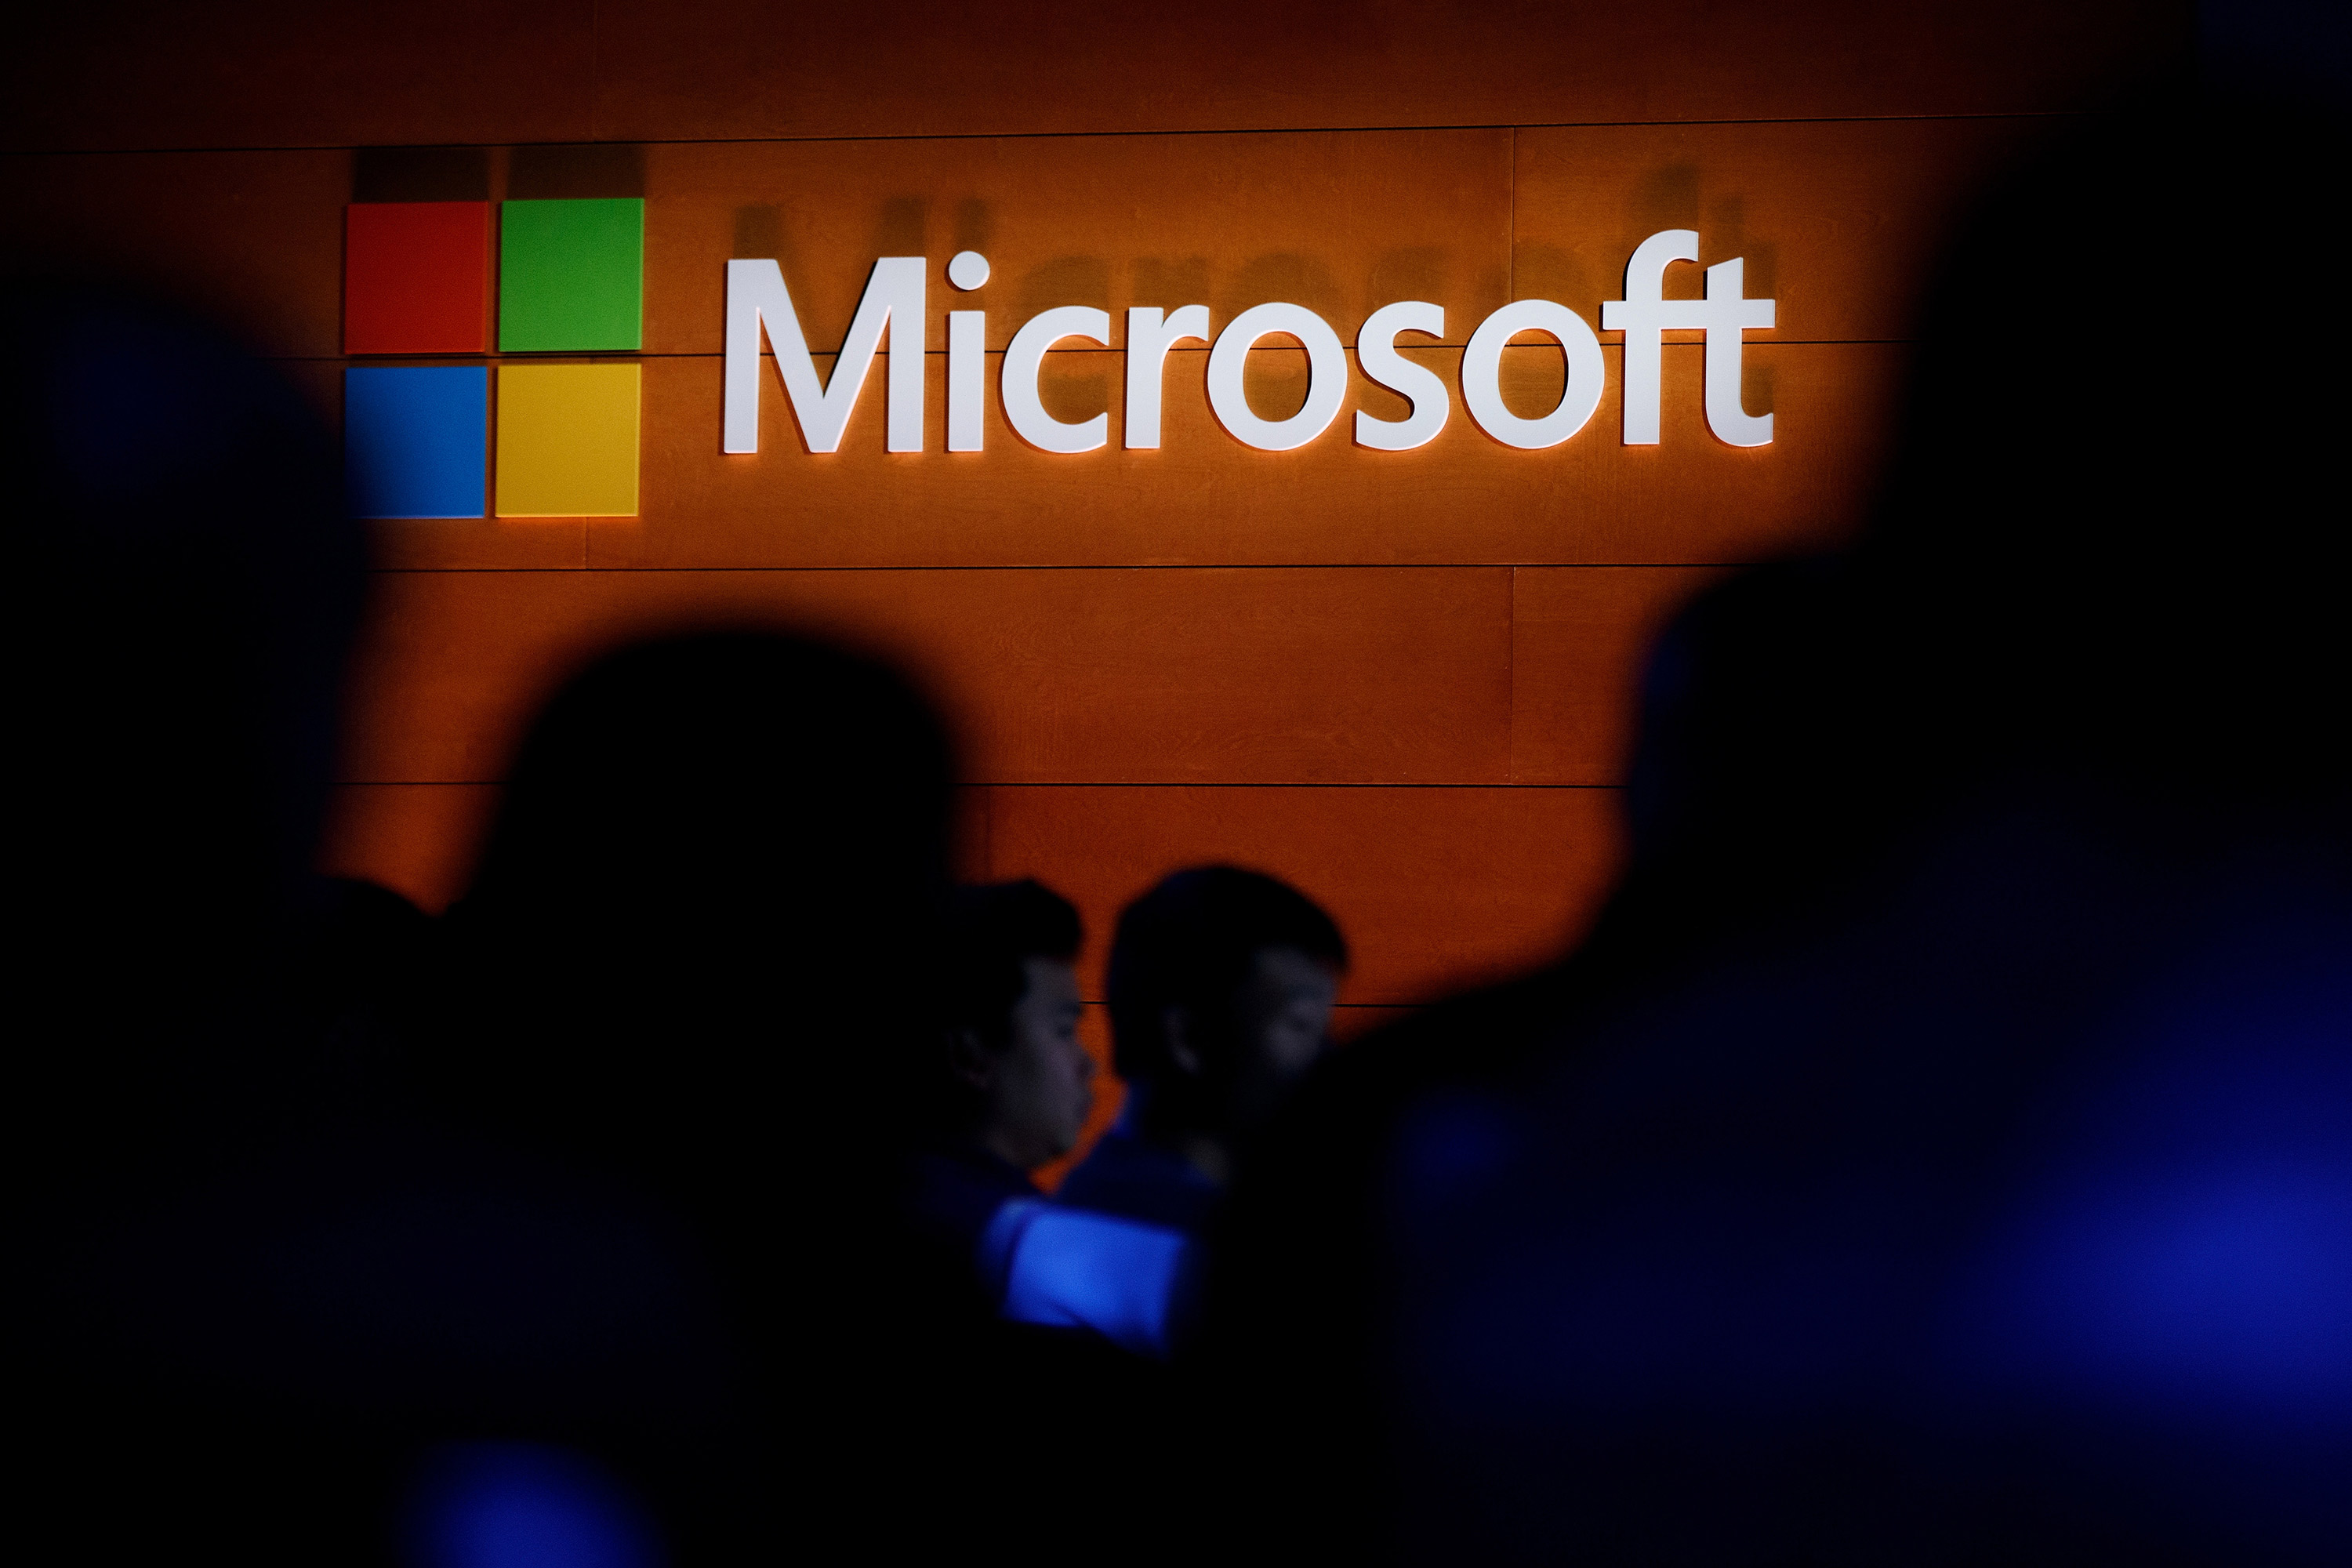 The Microsoft logo is illuminated on a wall on May 2, 2017 in New York.